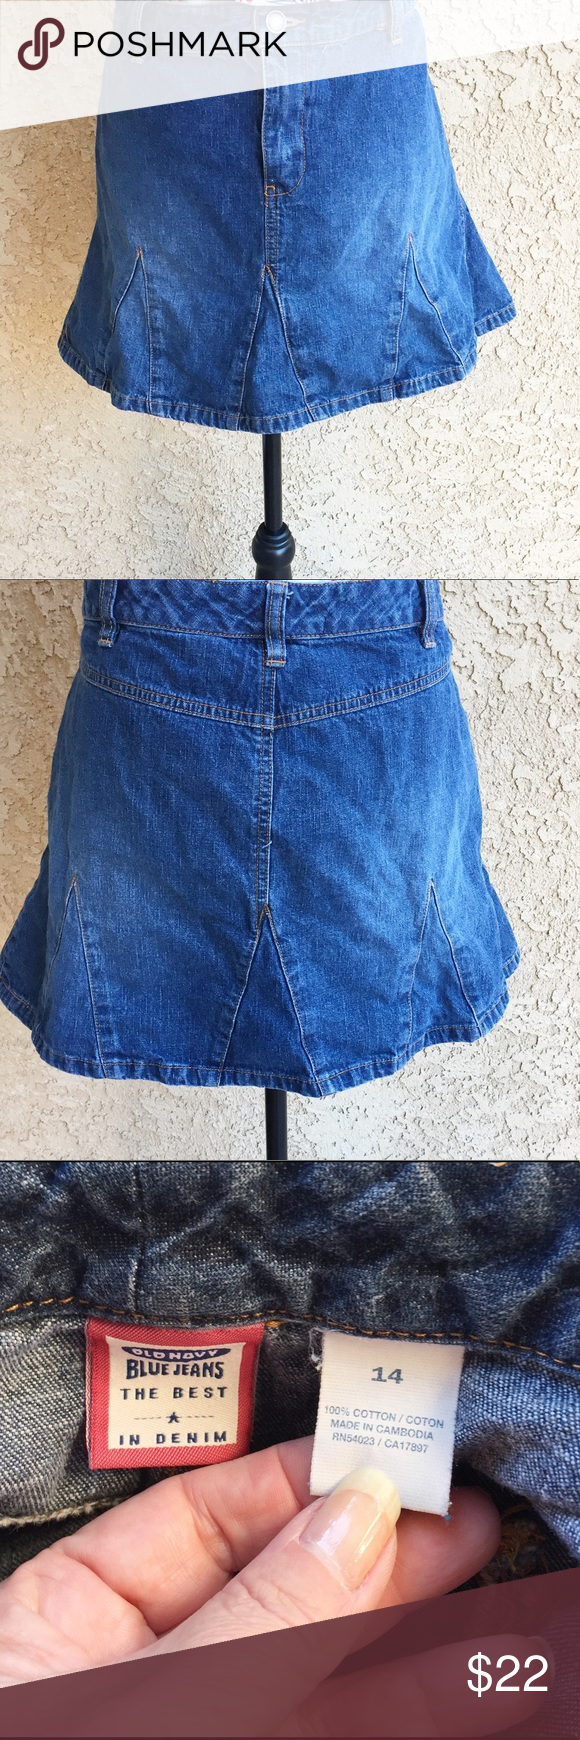 "Old Navy Mini Skirt Blue Jean Denim Flared BOHO 14 Cute denim skirt, front zip, button. Has insets to give it a flared look. Throw on a cute tee and sandals and you are ready to go ❤️❤️ Approx measurements laying flat are.....  ▪️Length- 15"" ▪️Waist-18"" 🍃🍃🍃🍃🍃🍃🍃🍃🍃🍃🍃🍃 ▪️ Fabric-100% cotton ▪️ Condition-Excellent pre-owned condition, no holes or stains ▪️ boho, festival, beach, cruise  ❤️ Offers welcome ❤️ Old Navy Skirts Mini"